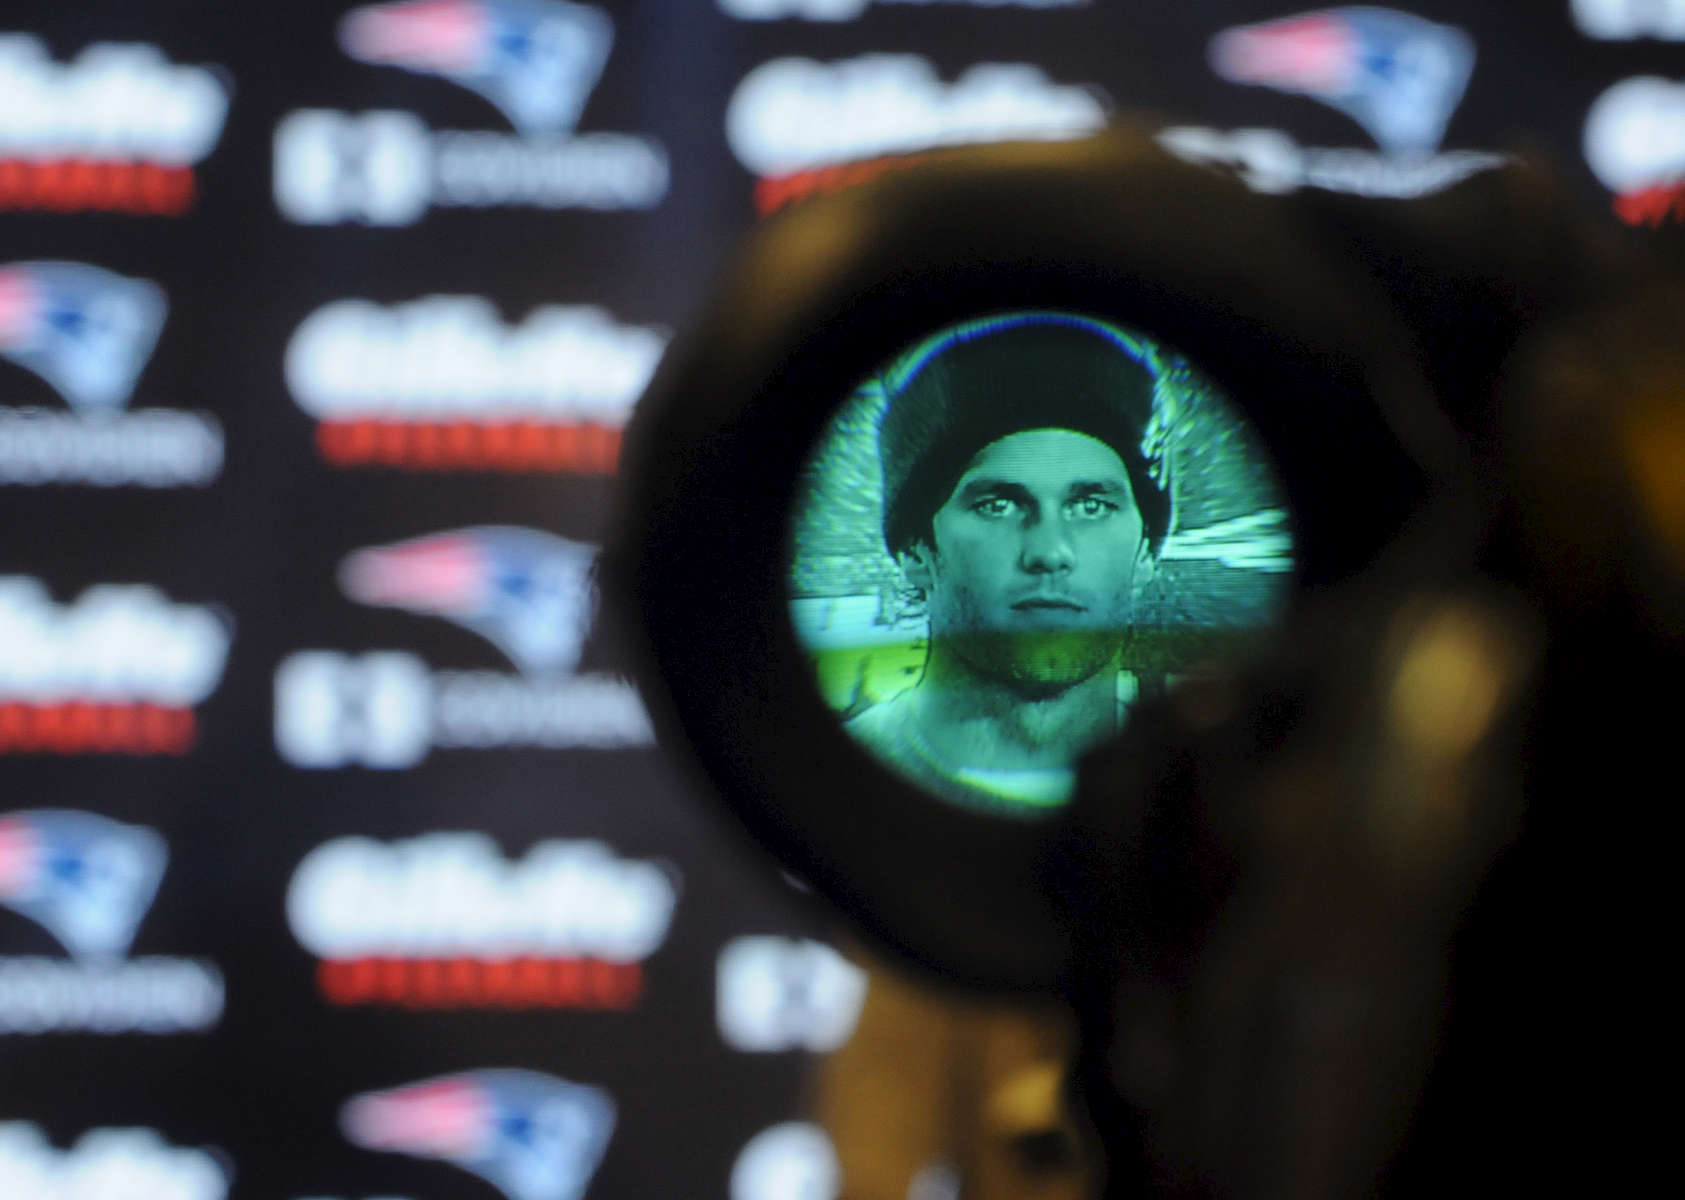 New England Patriots quarterback Tom Brady speaks to the media at a press conference at Gillette Stadium Thursday. The press conference centered around the fact that 11 of 12 Patriot game balls were under-inflated according to NFL rules during the first half of Sunday's AFC Championship victory over the Colts.